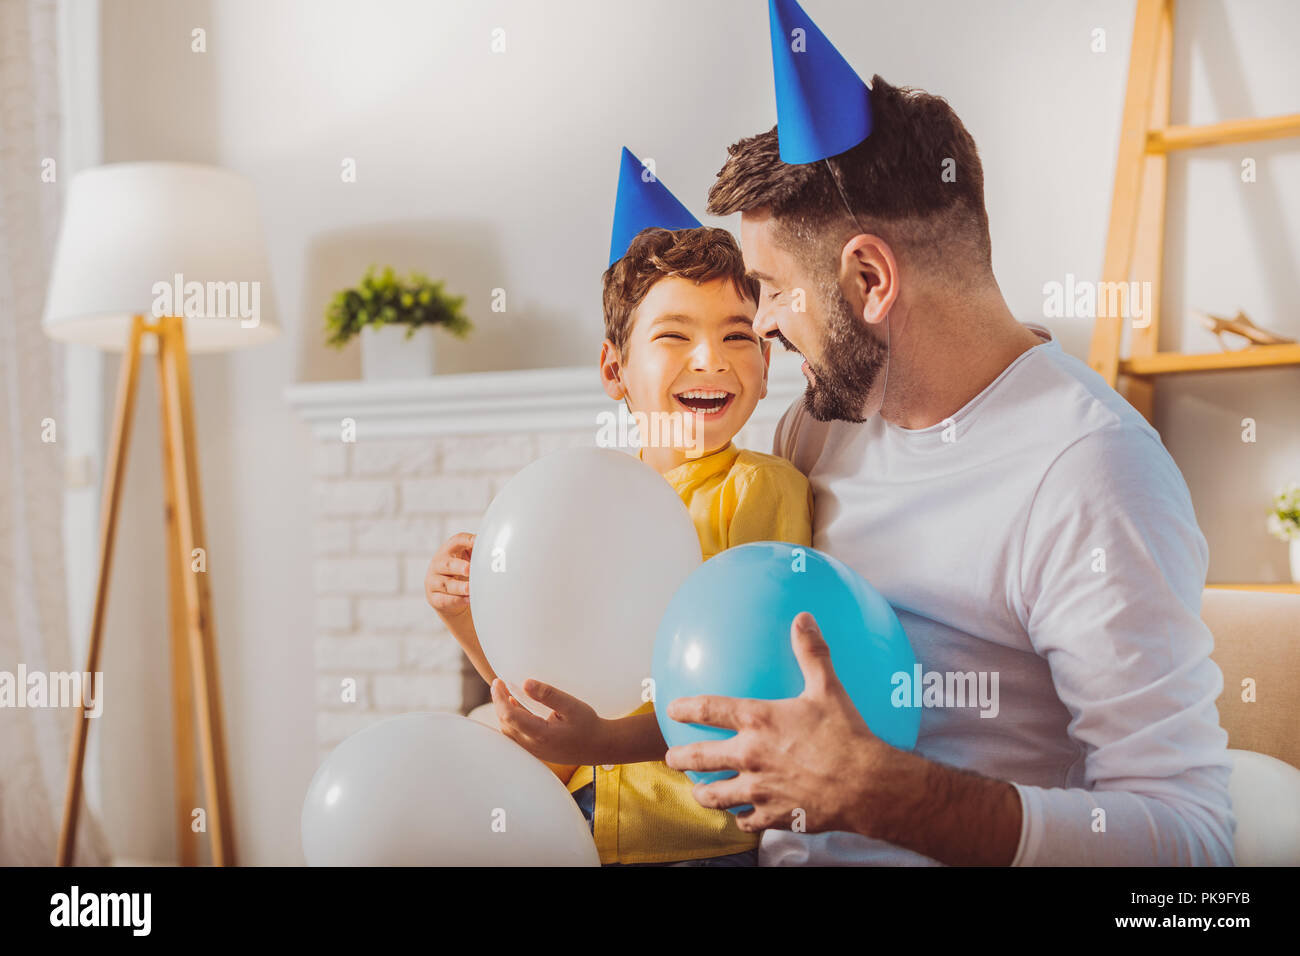 Merry charming boy and man having fun with balloons - Stock Image